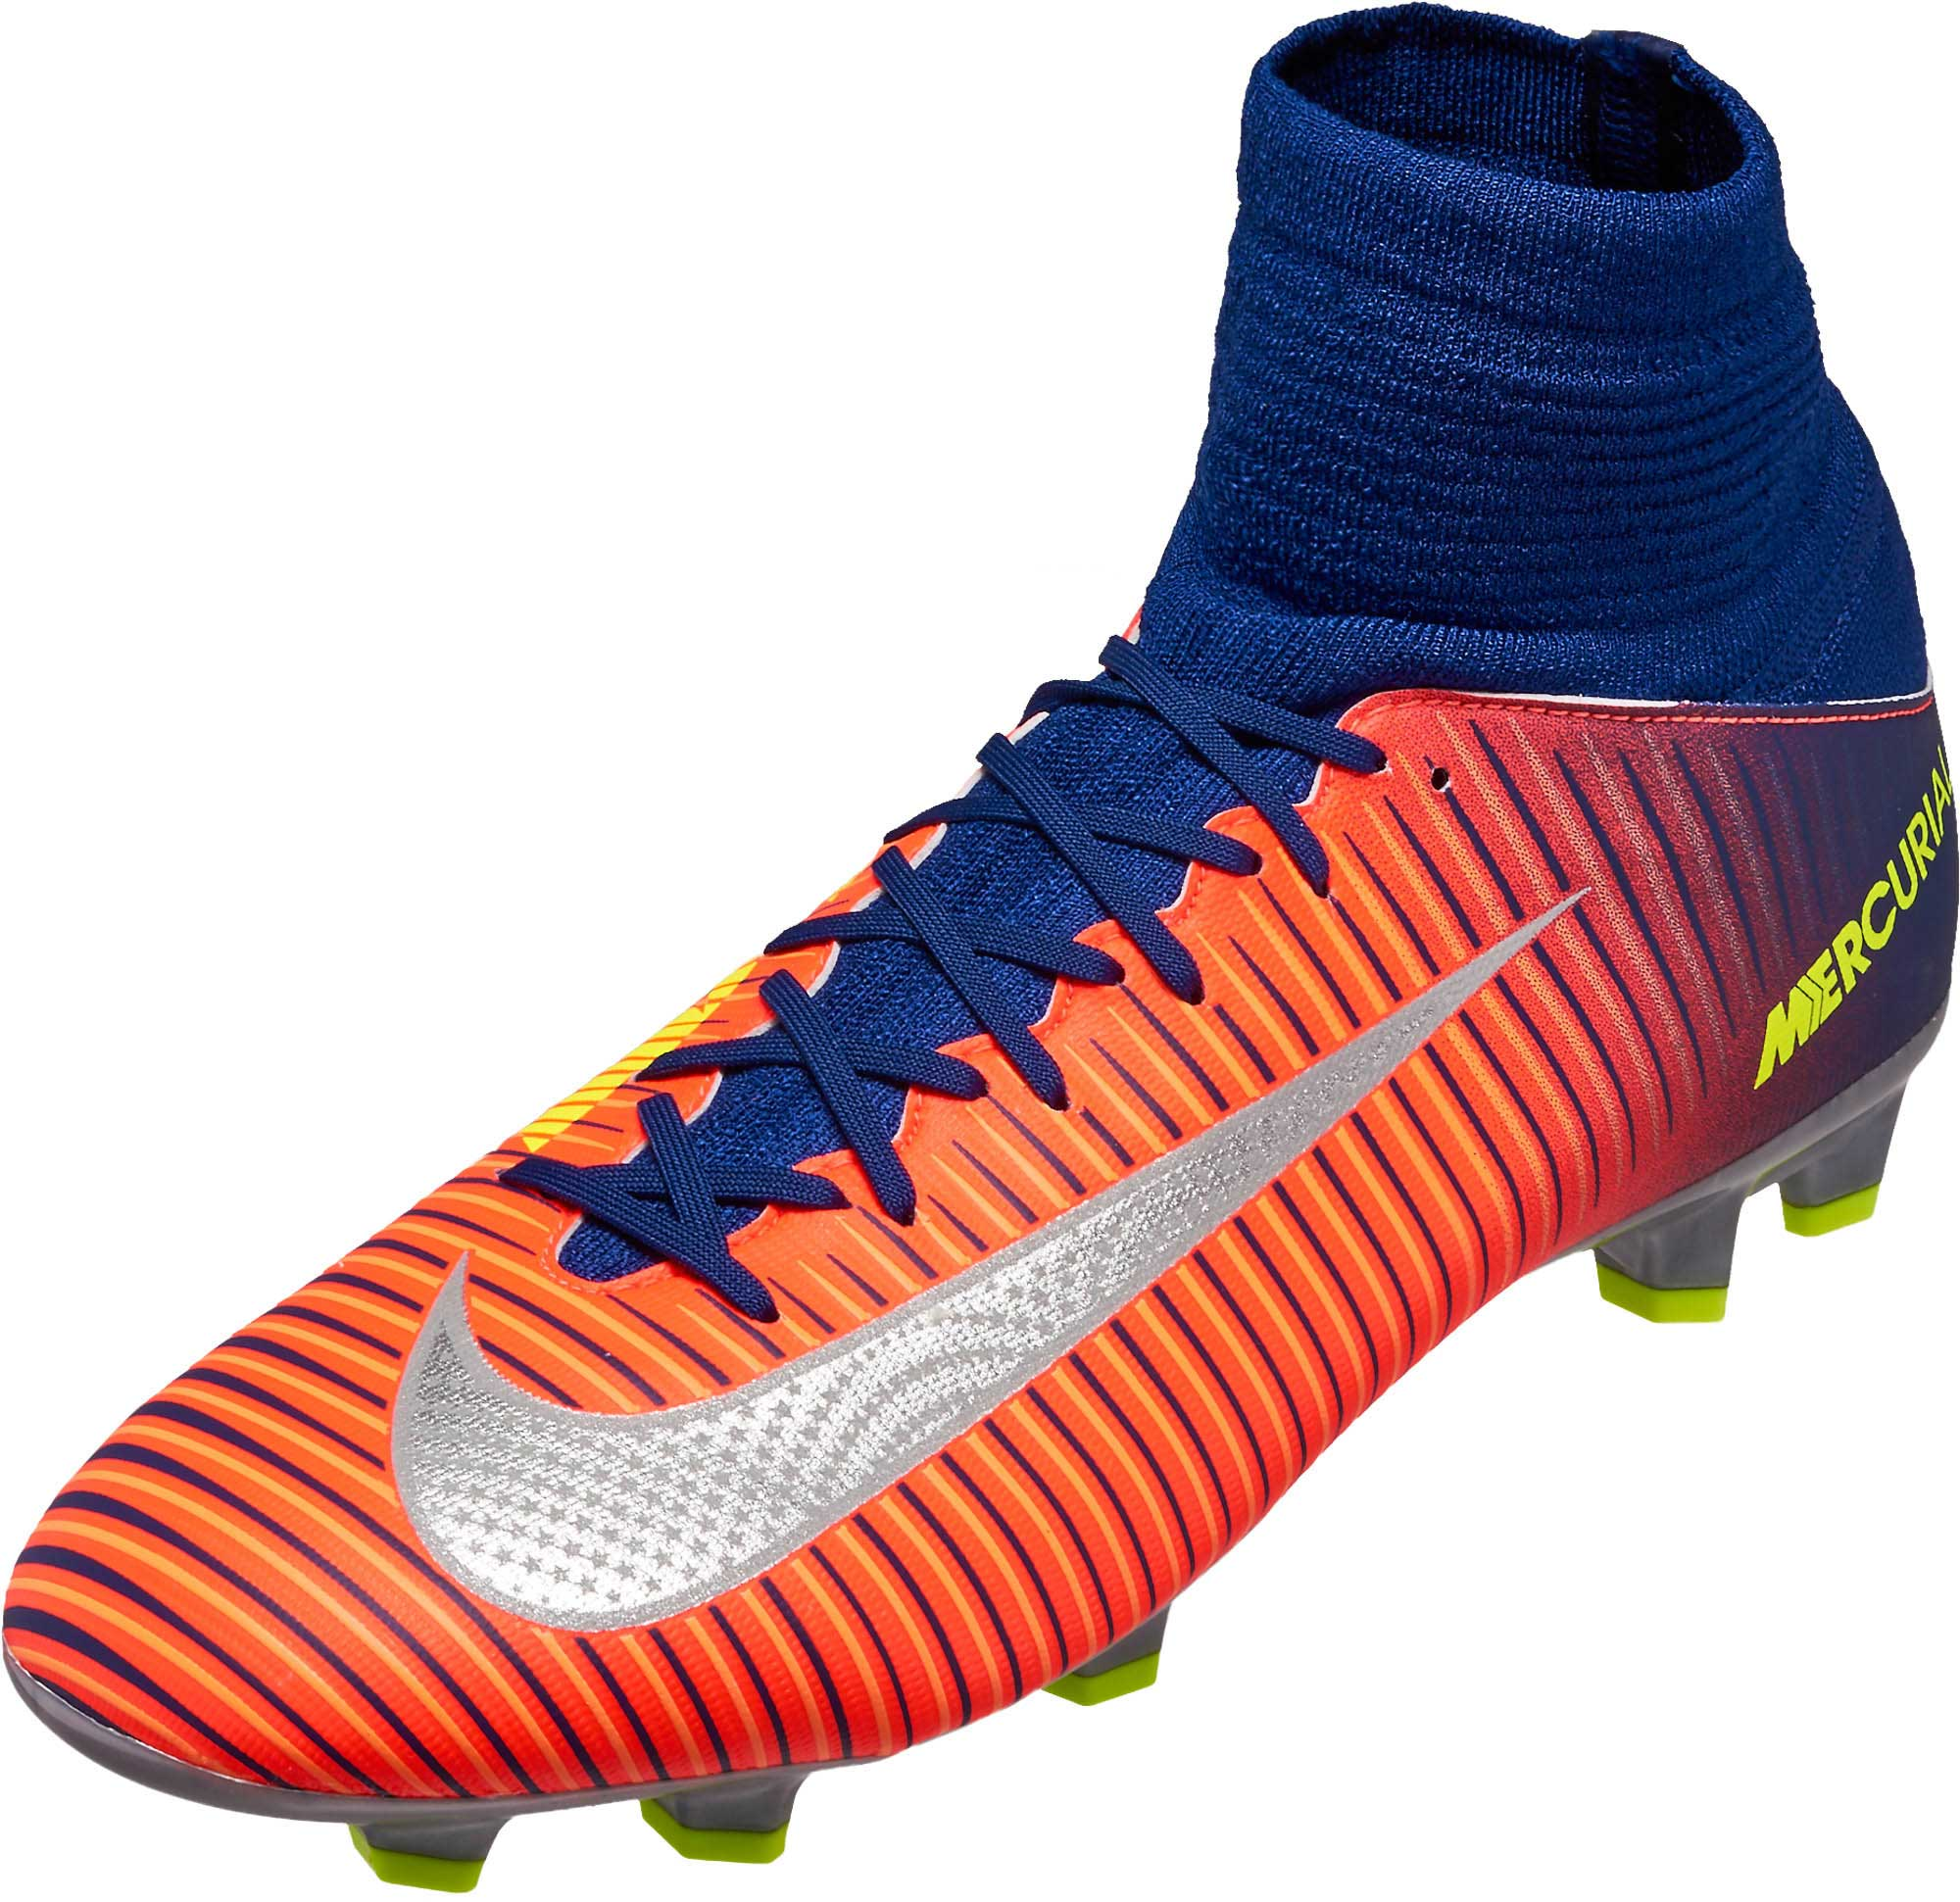 ccf47e0de9a7 Nike Kids Mercurial Superfly V FG – Deep Royal Blue Chrome